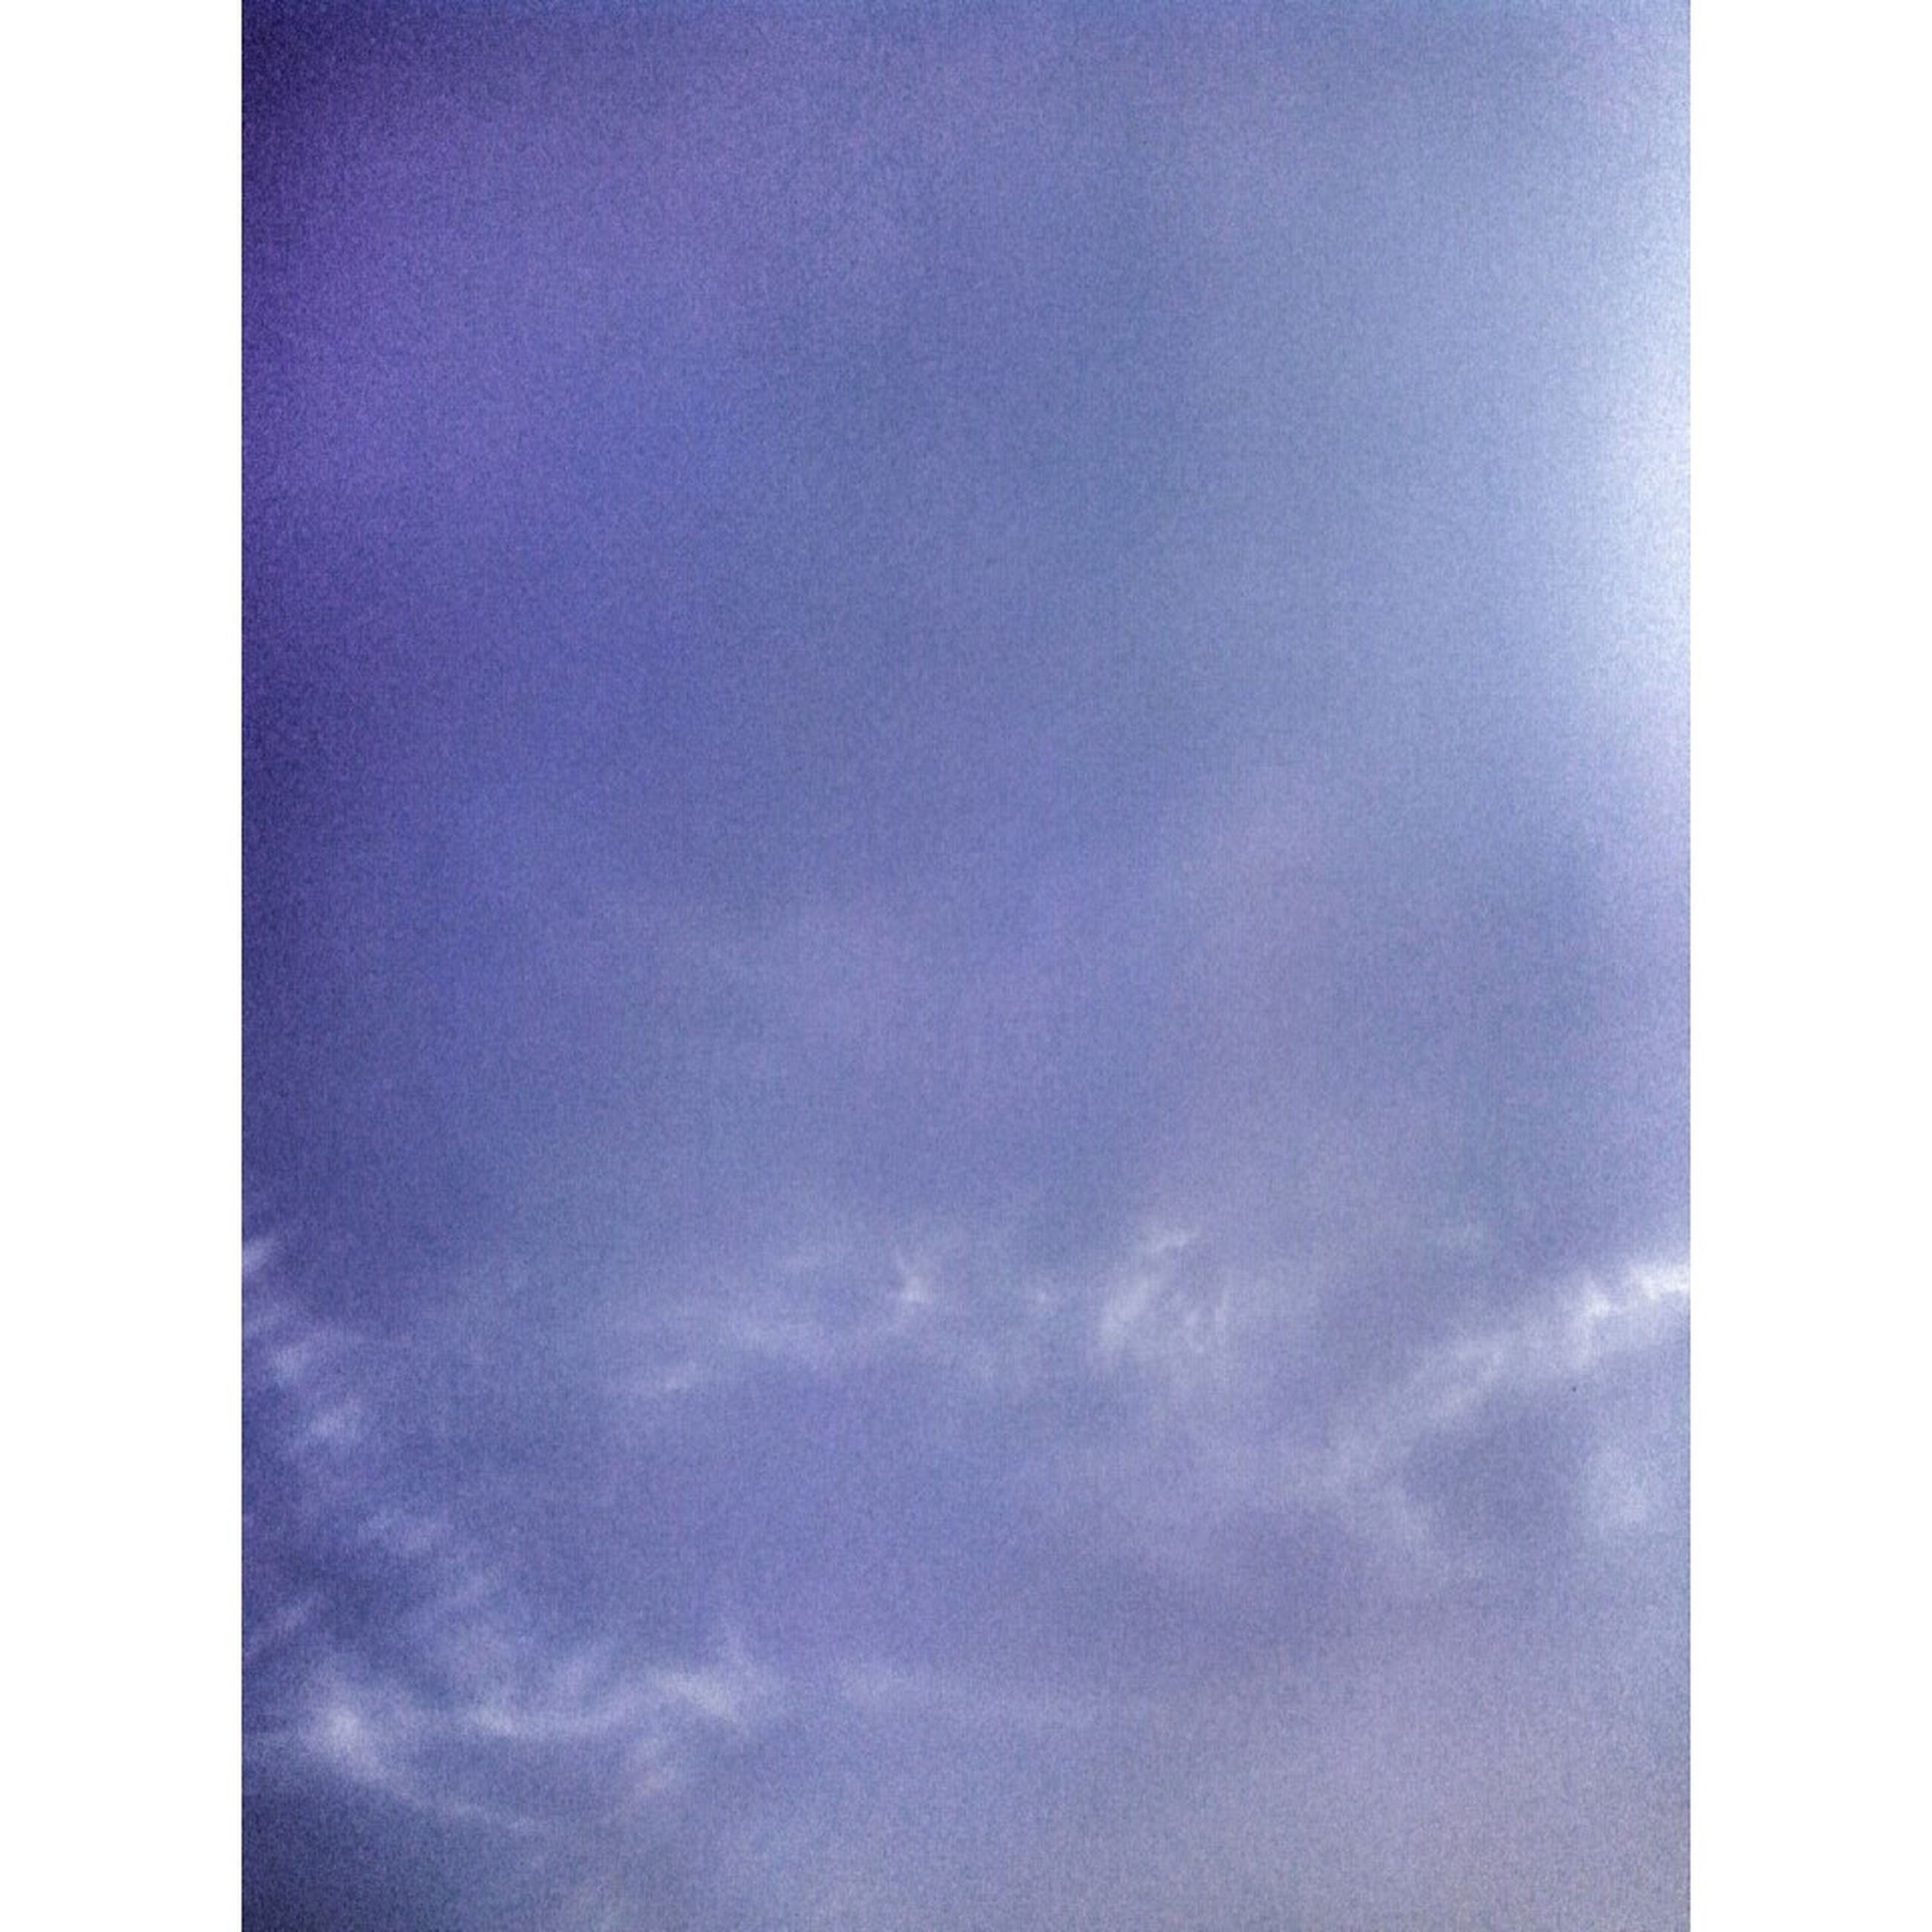 transfer print, auto post production filter, sky, low angle view, copy space, beauty in nature, blue, scenics, tranquility, nature, cloud - sky, tranquil scene, backgrounds, sky only, no people, outdoors, cloud, day, idyllic, cloudy